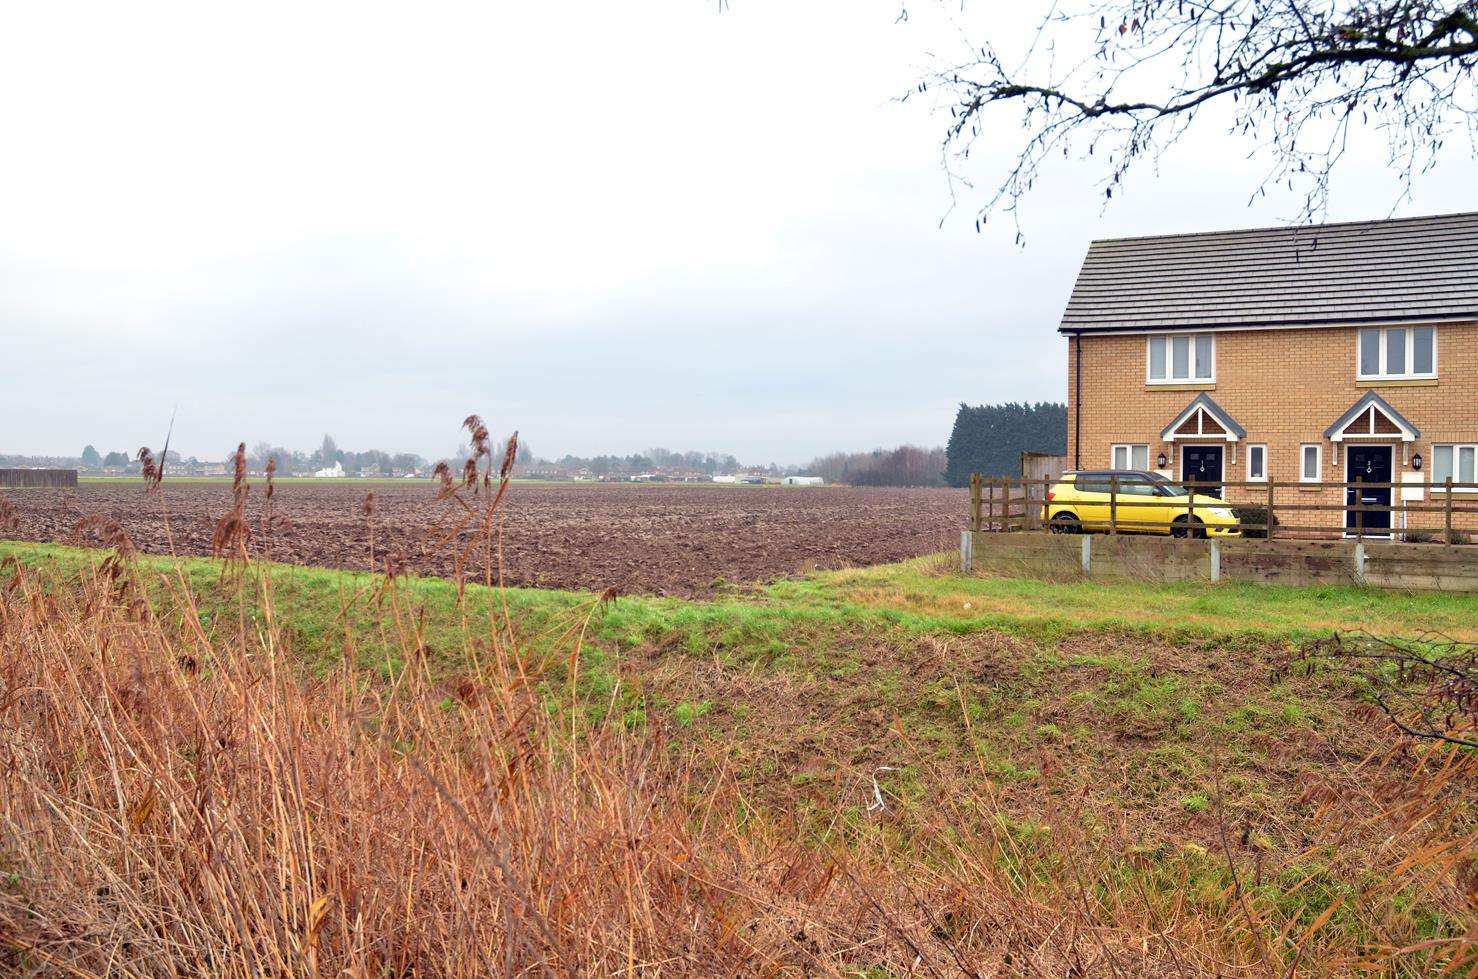 Land off Lime Walk and Anfield Road, Long Sutton, that could be used for up to 70 new homes. Photo (TIM WILSON): SG-250119-004TW.